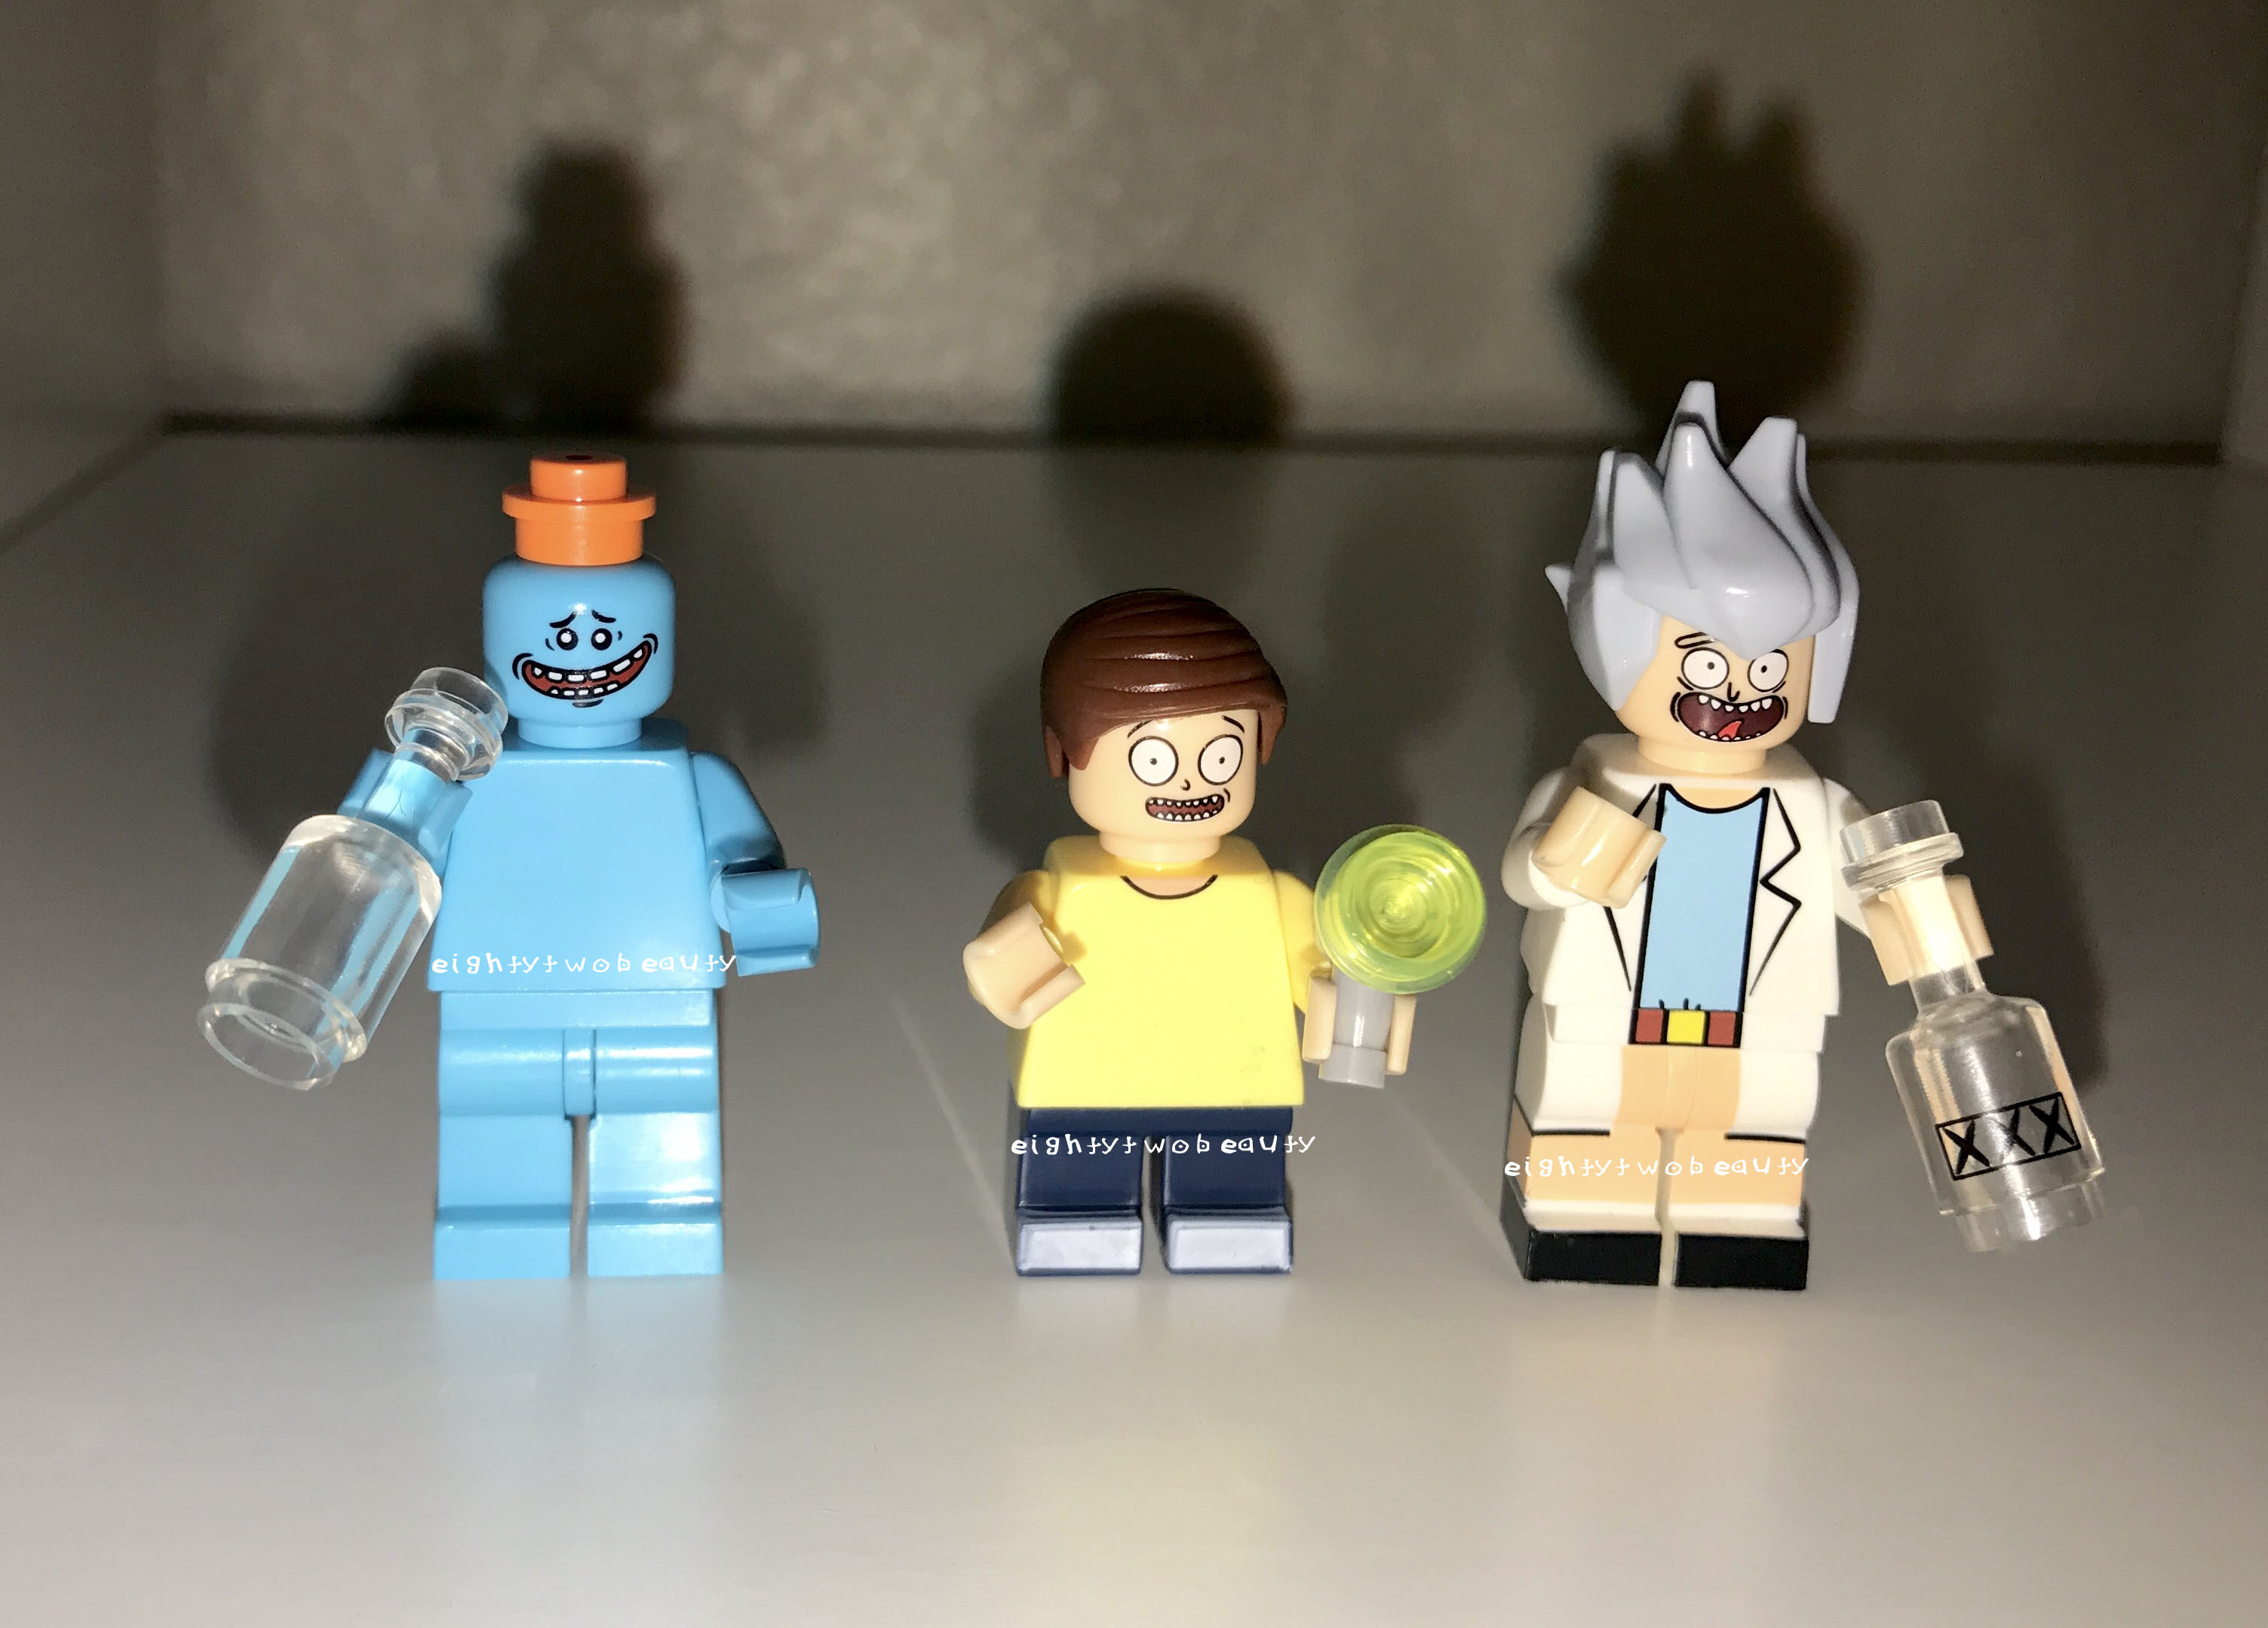 Custom Designed Minifigures Rick and Morty Printed on LEGO Parts